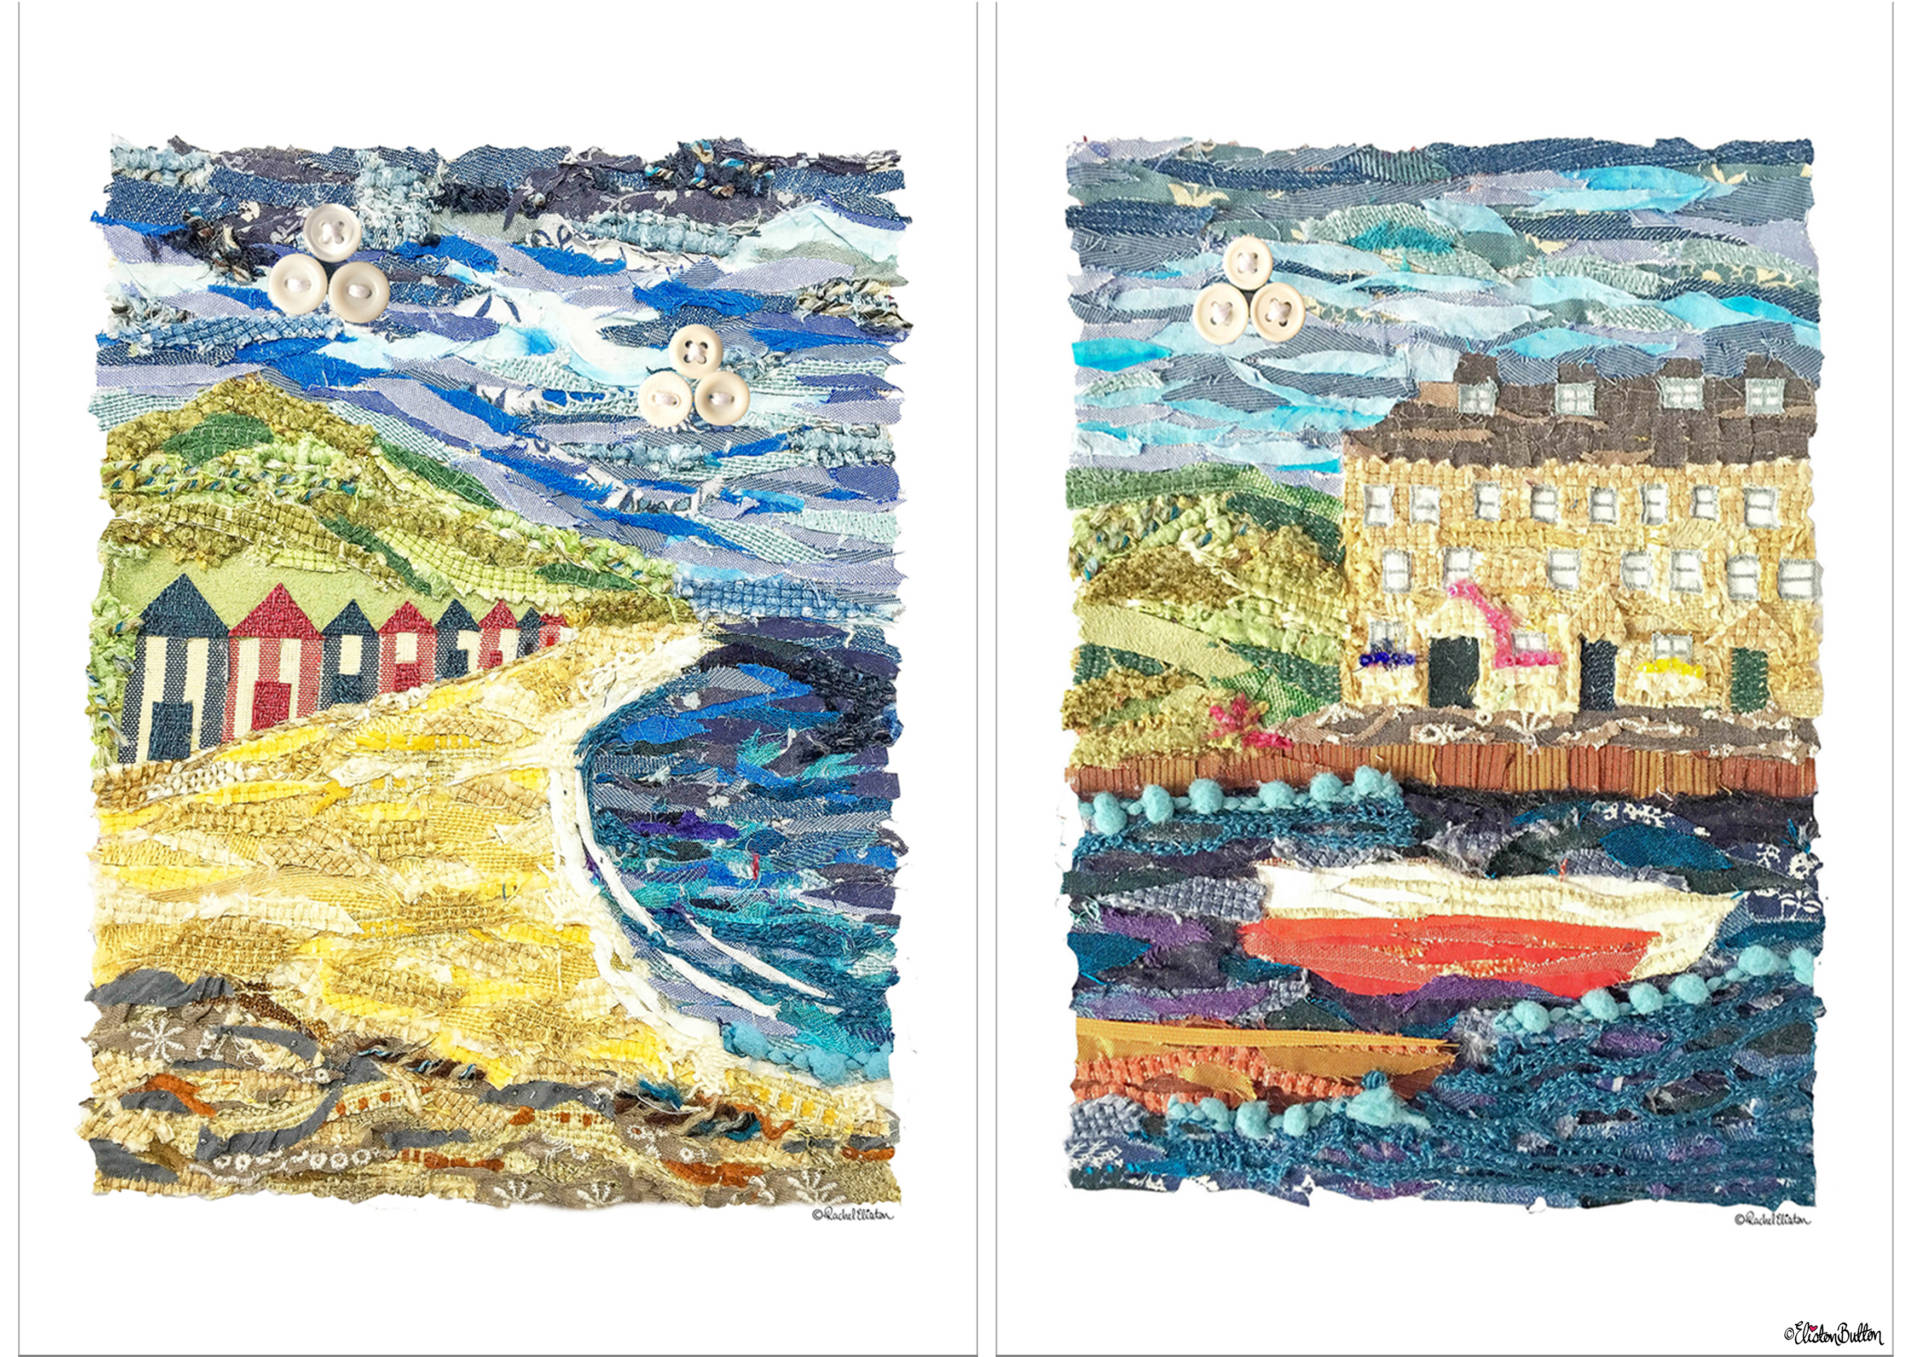 Fabric Beach Huts and Seaside Harbour Collage Prints By Eliston Button - New Fabric Collage and Shooting Star Prints at www.elistonbutton.com - Eliston Button - That Crafty Kid – Art, Design, Craft & Adventure.